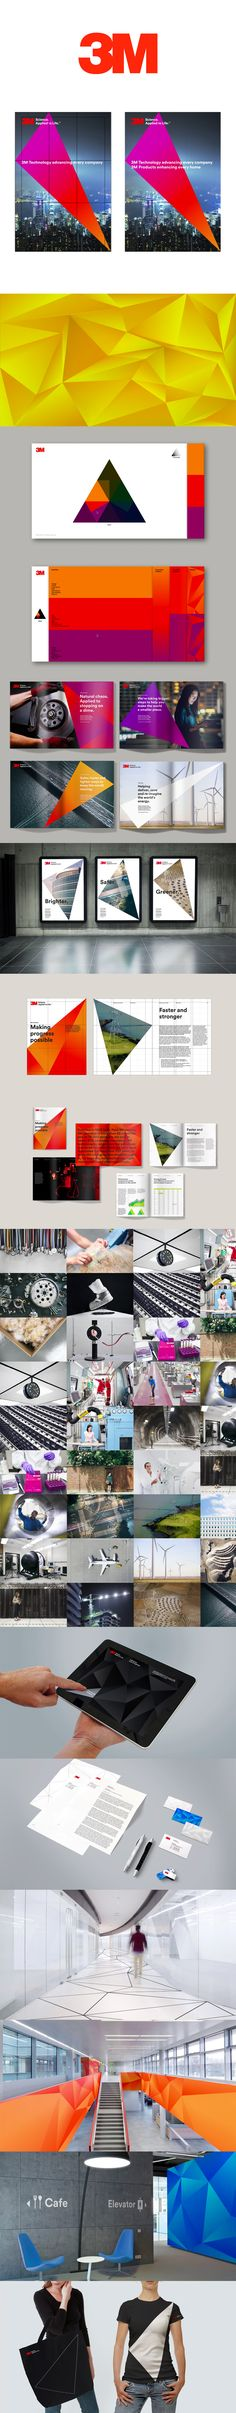 More corporate-designs are collected on: https://pinterest.com/rothenhaeusler/best-of-corporate-design/ · Client: 3M · Agency: Wolff Olins #branding #identity #corporatedesign